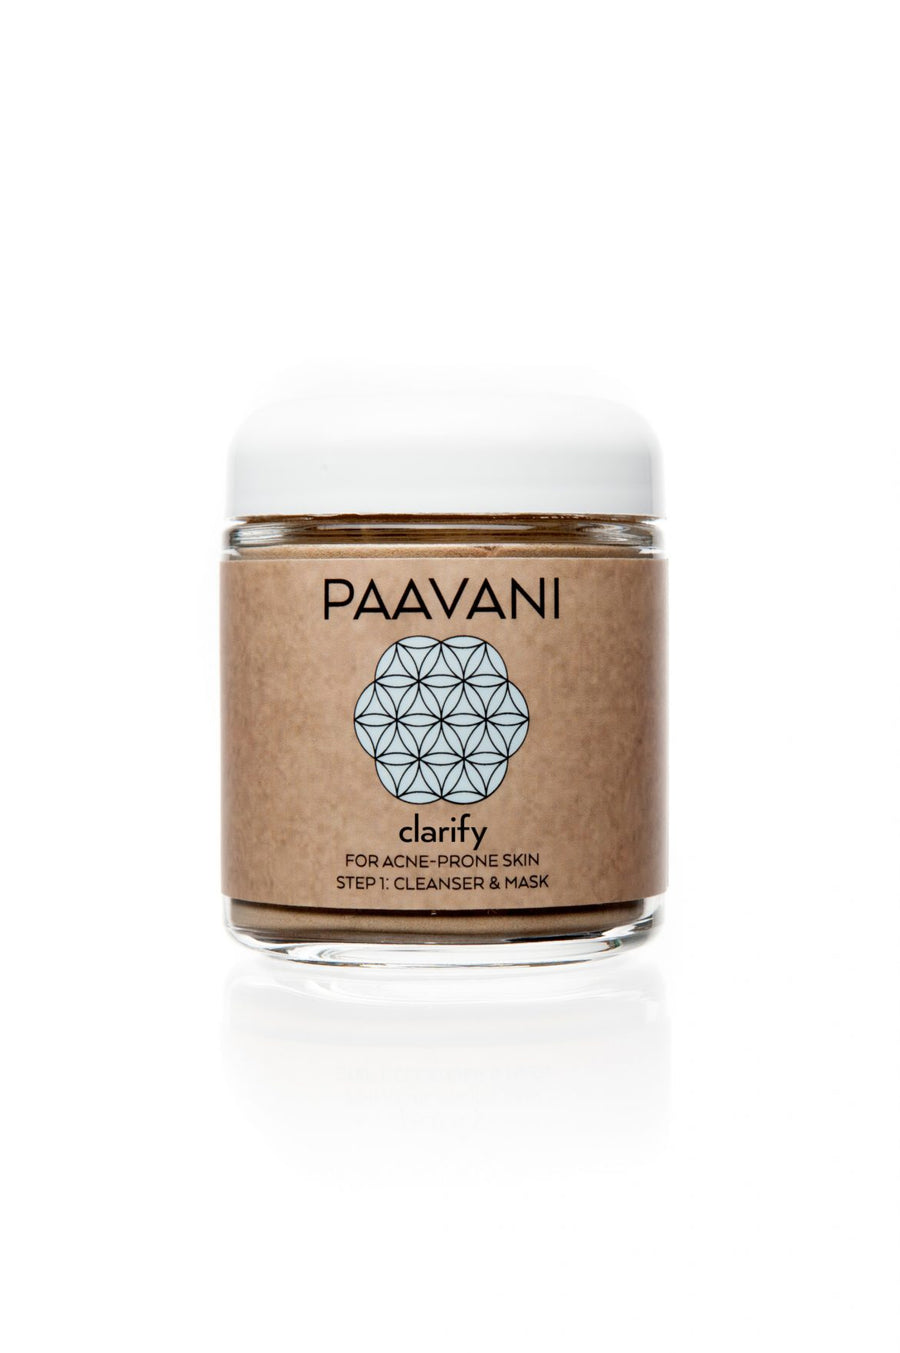 paavani clarify cleanser & mask